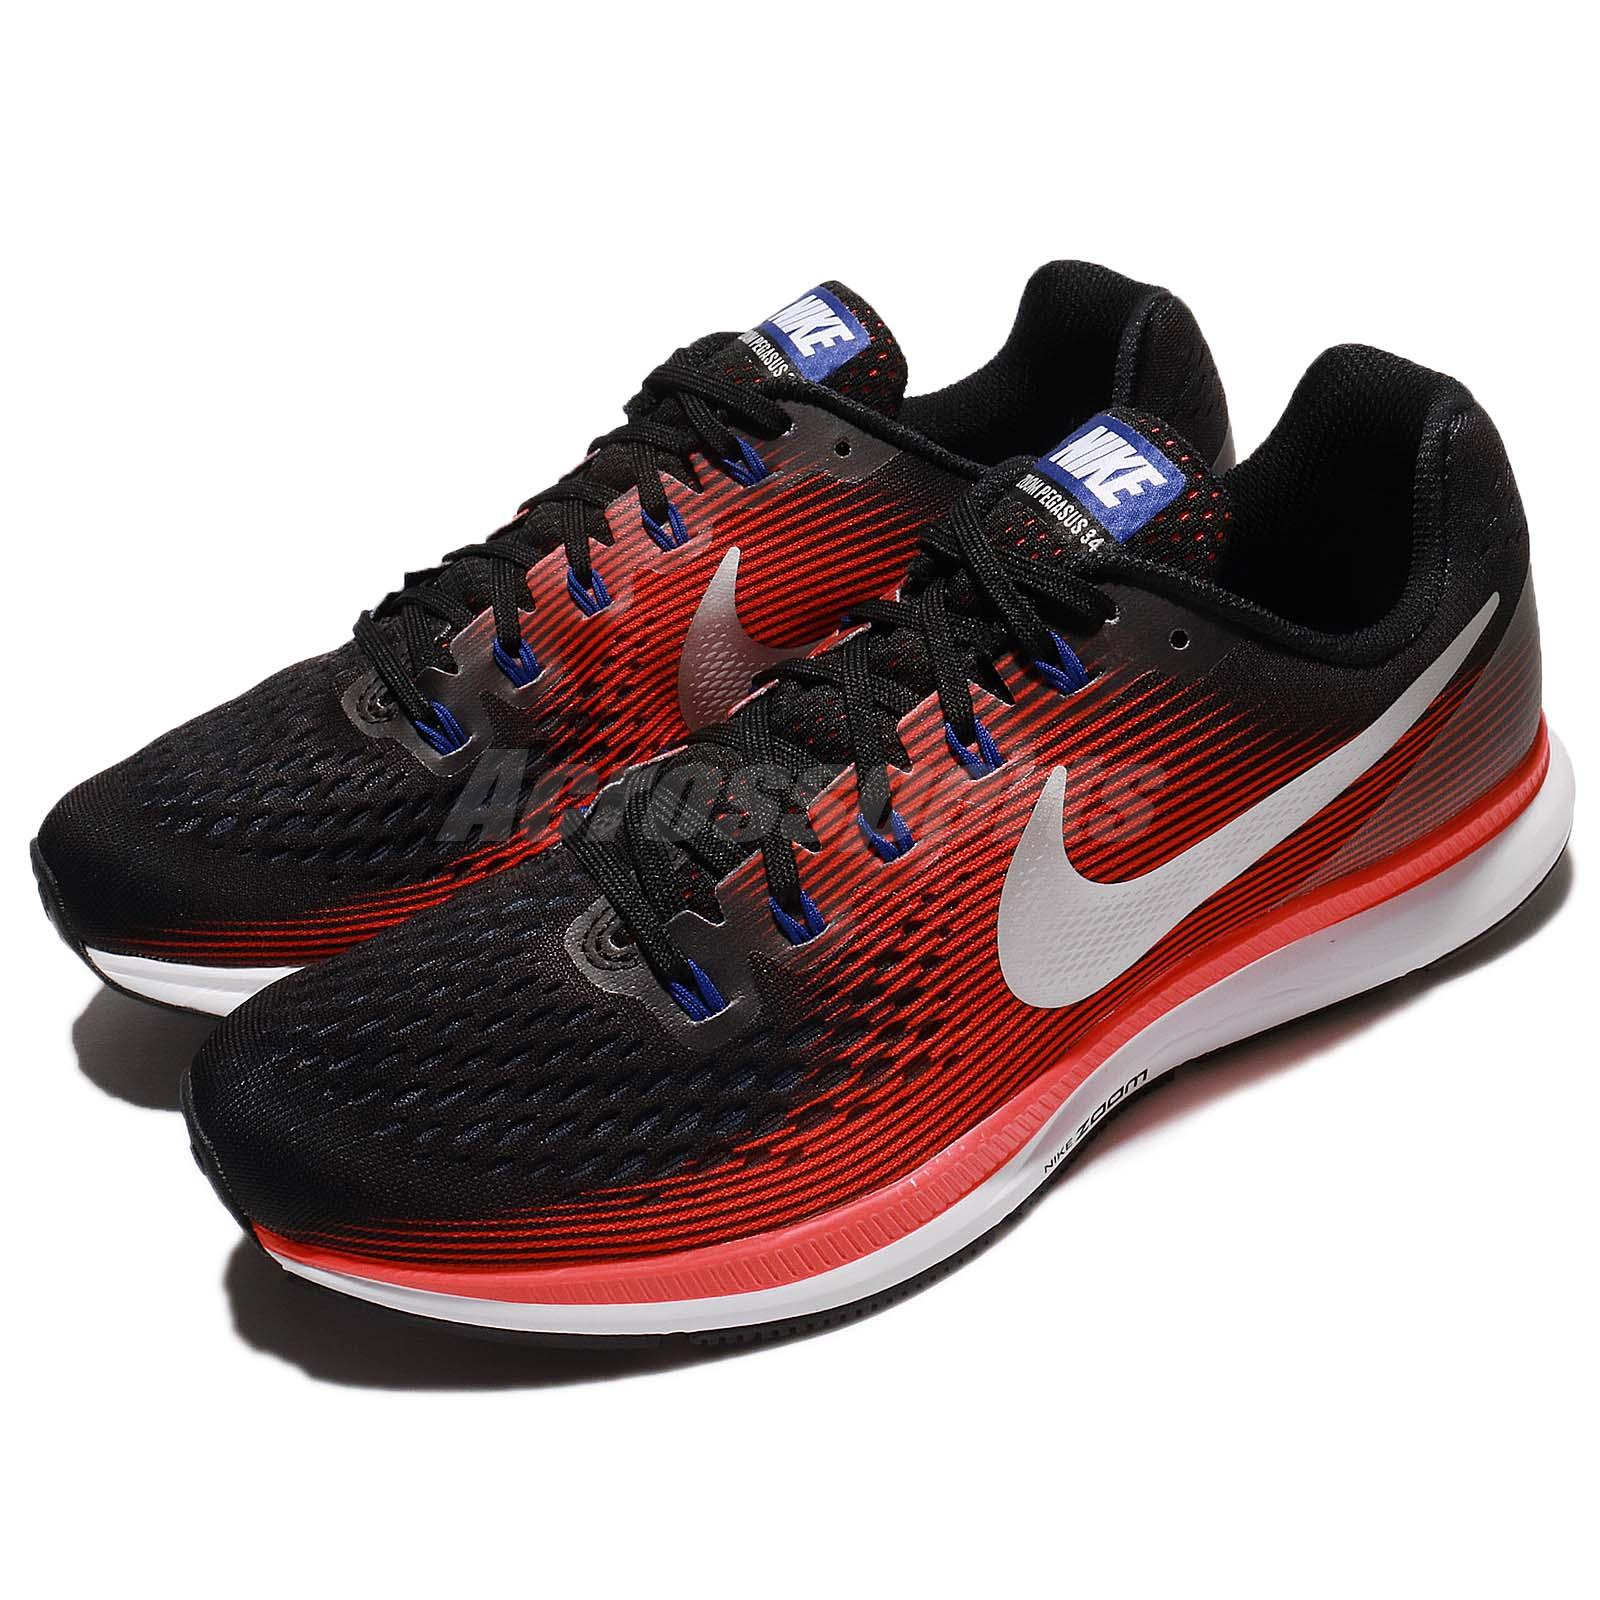 buy popular 7c848 6fe6e Details about Nike Air Zoom Pegasus 34 Black Red Silver Men Running Shoes  Sneakers 880555-006